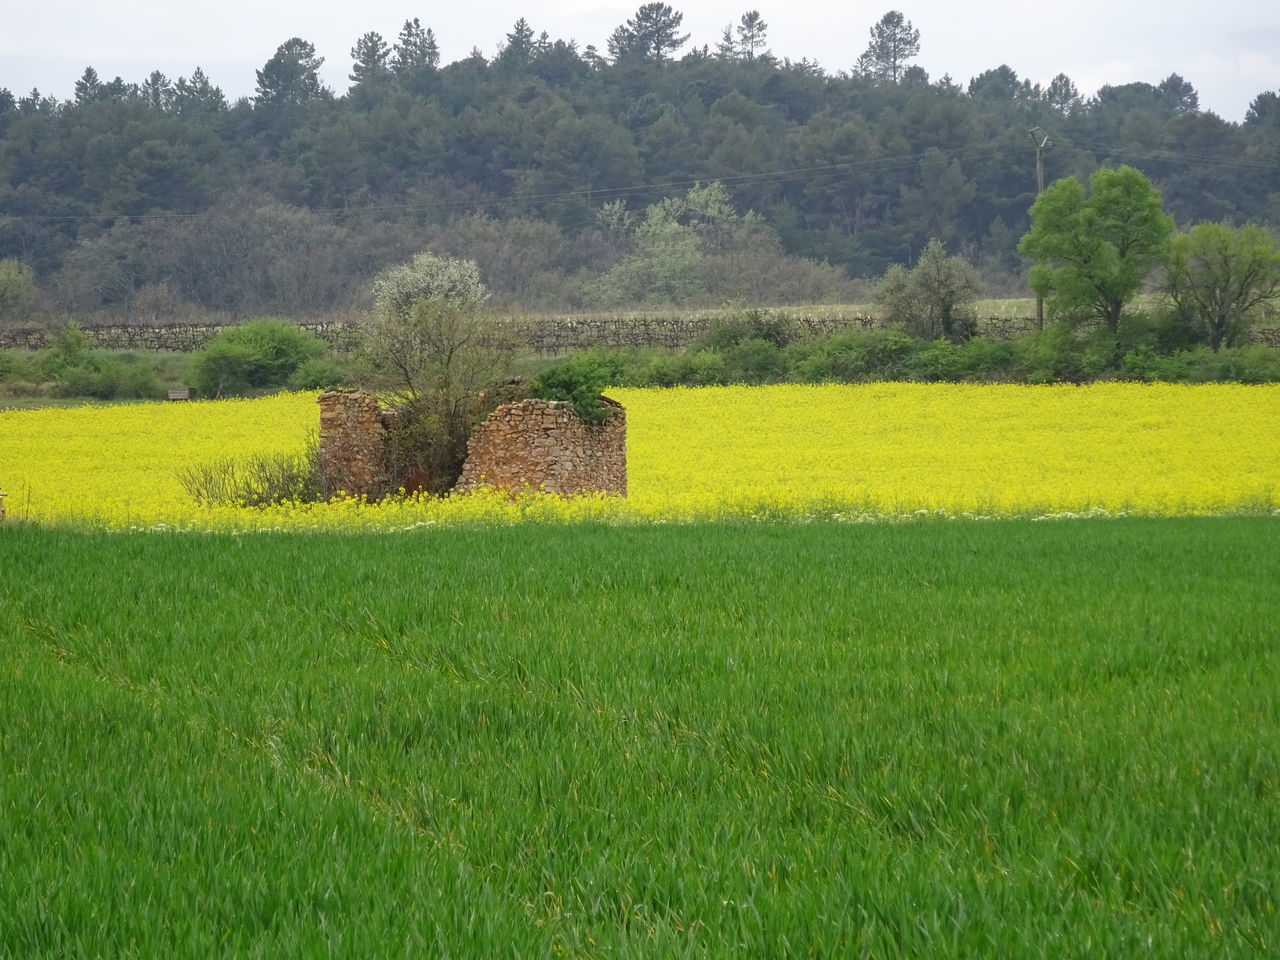 field, agriculture, nature, tree, green color, growth, day, tranquility, no people, landscape, tranquil scene, grass, beauty in nature, rural scene, outdoors, built structure, yellow, architecture, scenics, sky